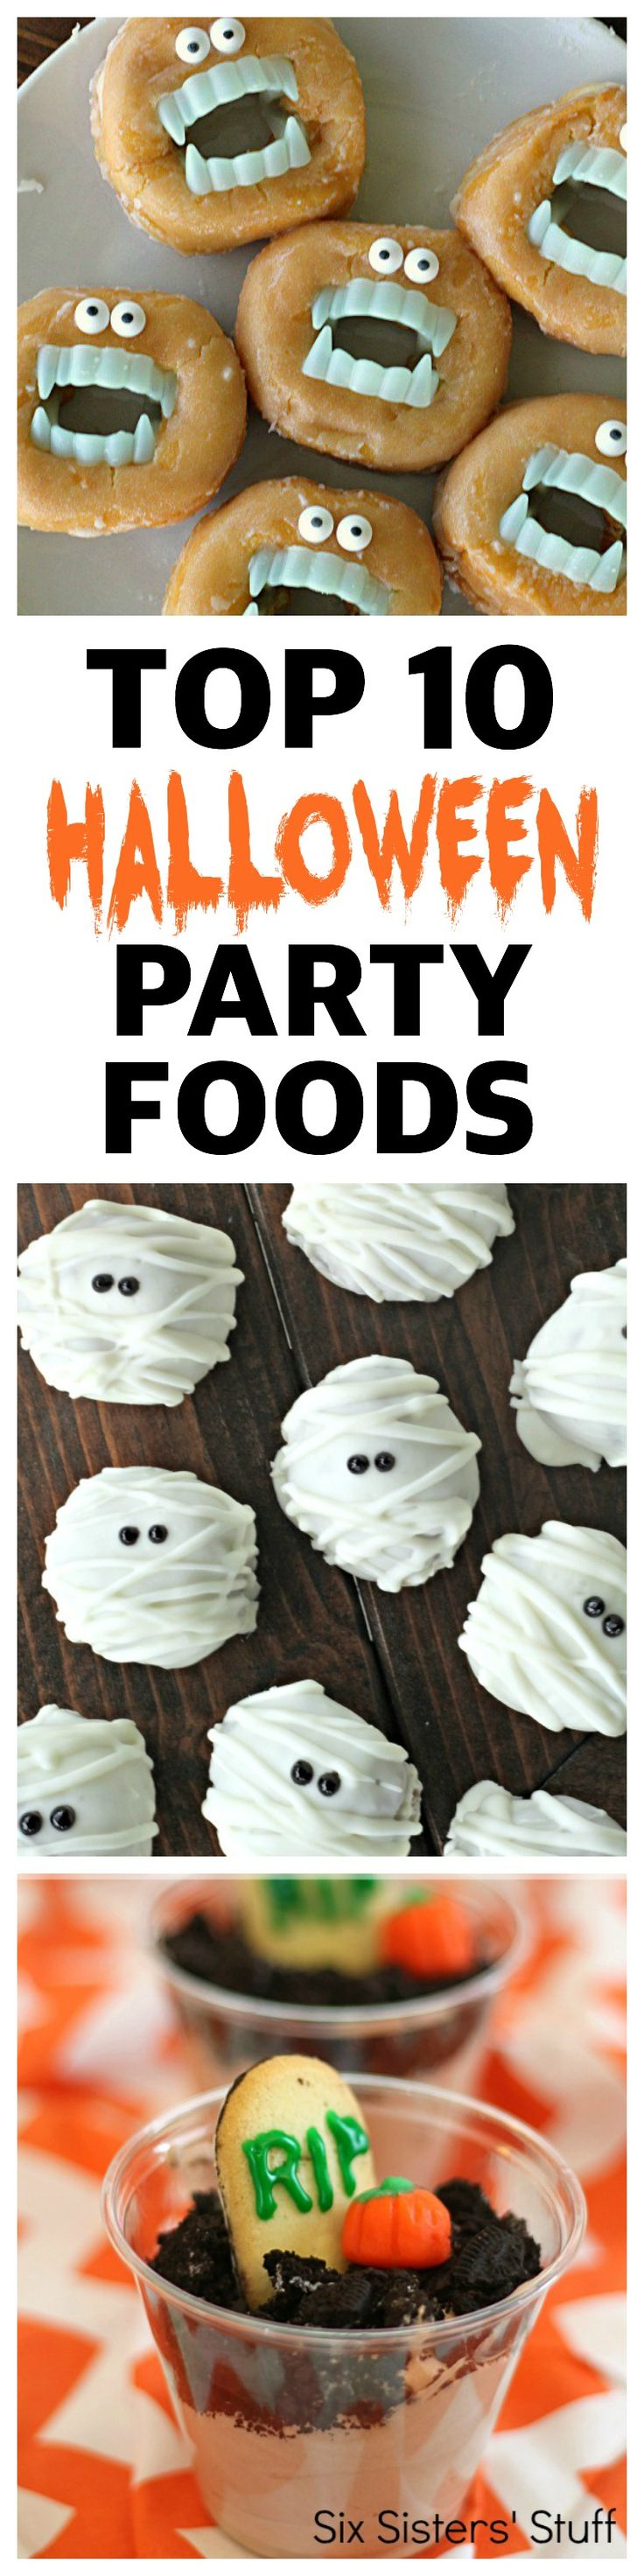 Top 10 Halloween Party Foods on SixSistersStuff.com